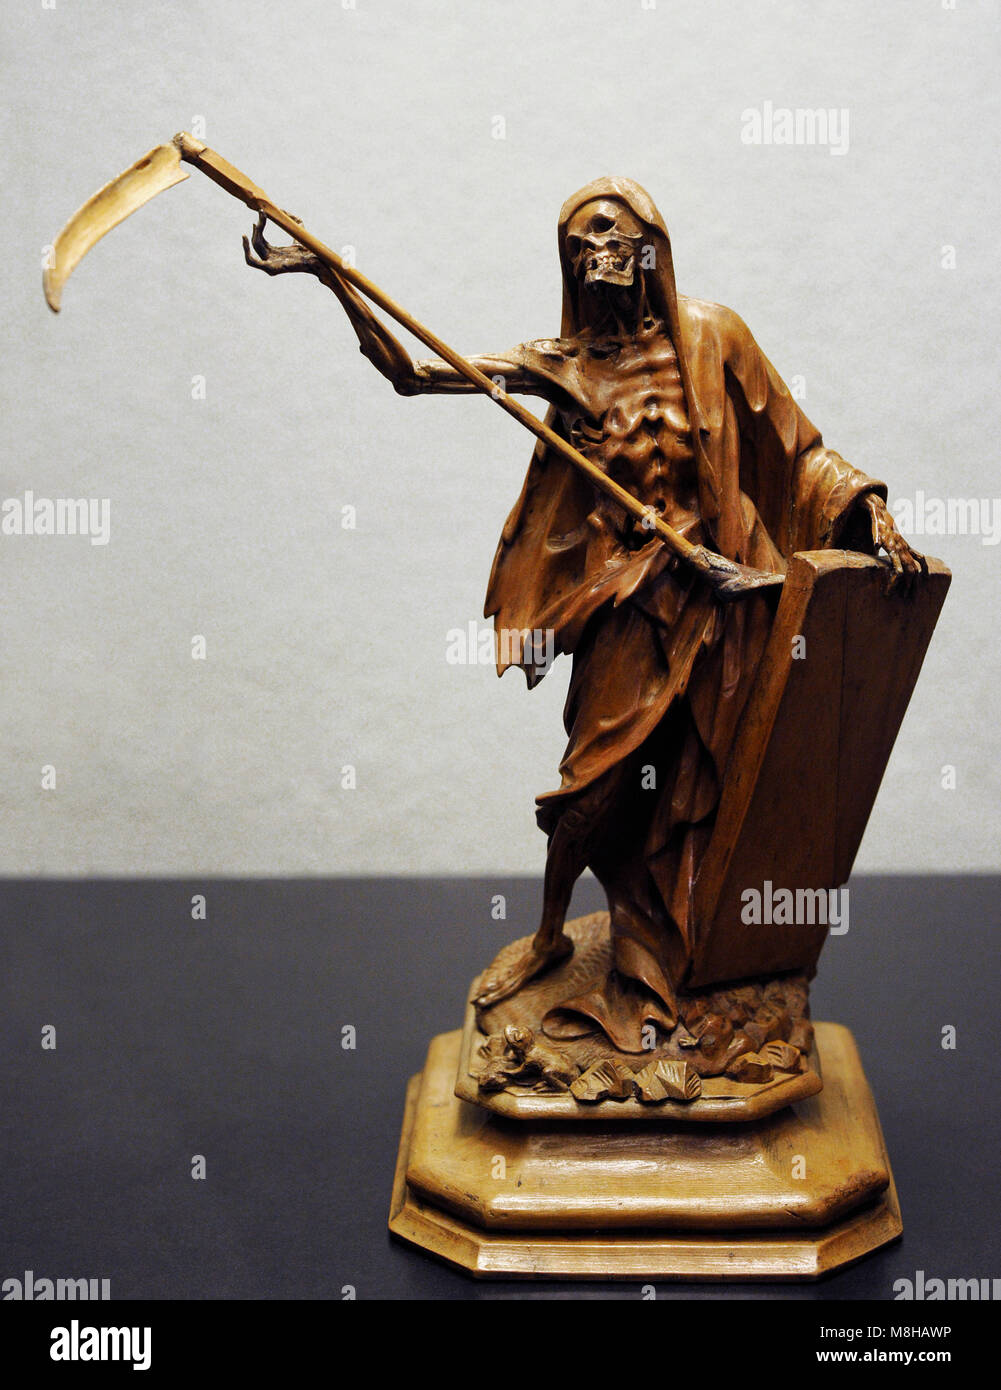 Death as the Grim Reaper. Southern Germany, 1750-1800. Wood. Museum Schnütgen. Cologne, Germany. - Stock Image